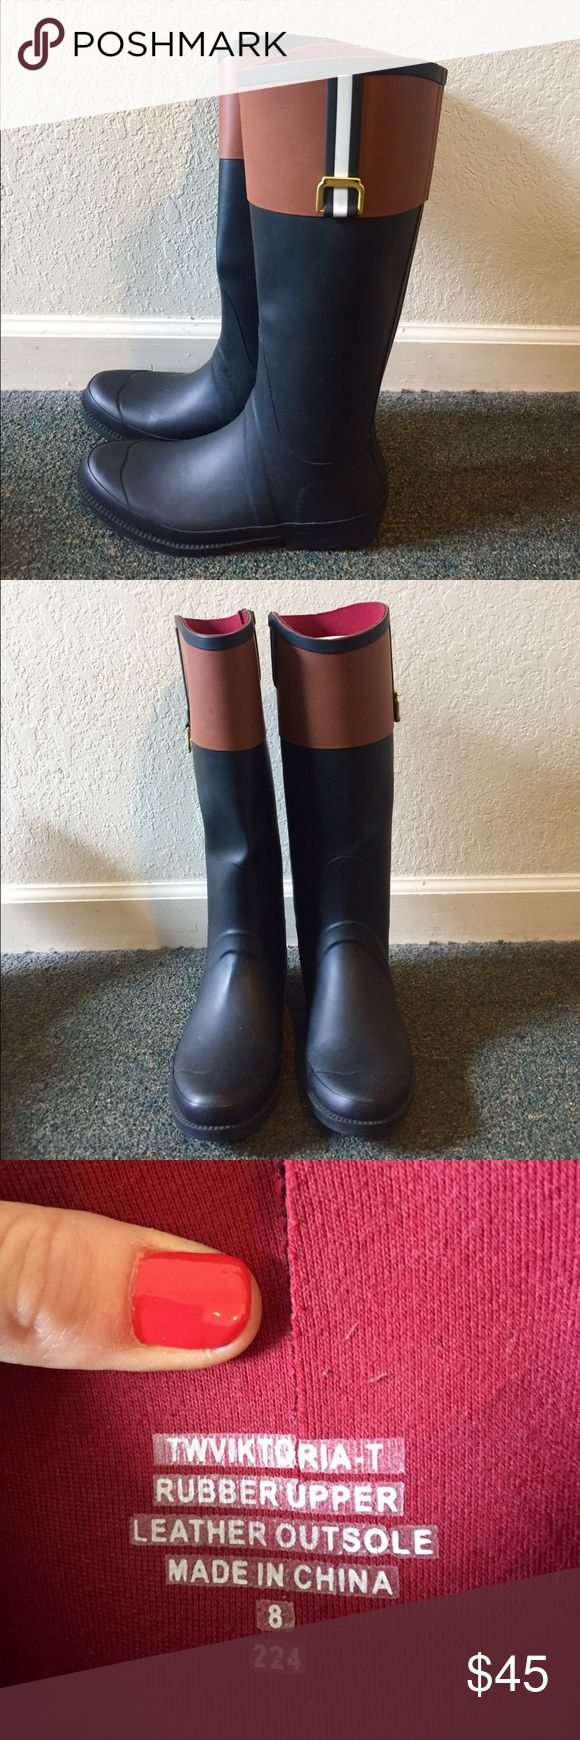 Tommy Hilfiger Rain Boots Tommy Hilfiger size 8 rain boots, black and brown- great condition Tommy Hilfiger Shoes Winter & Rain Boots